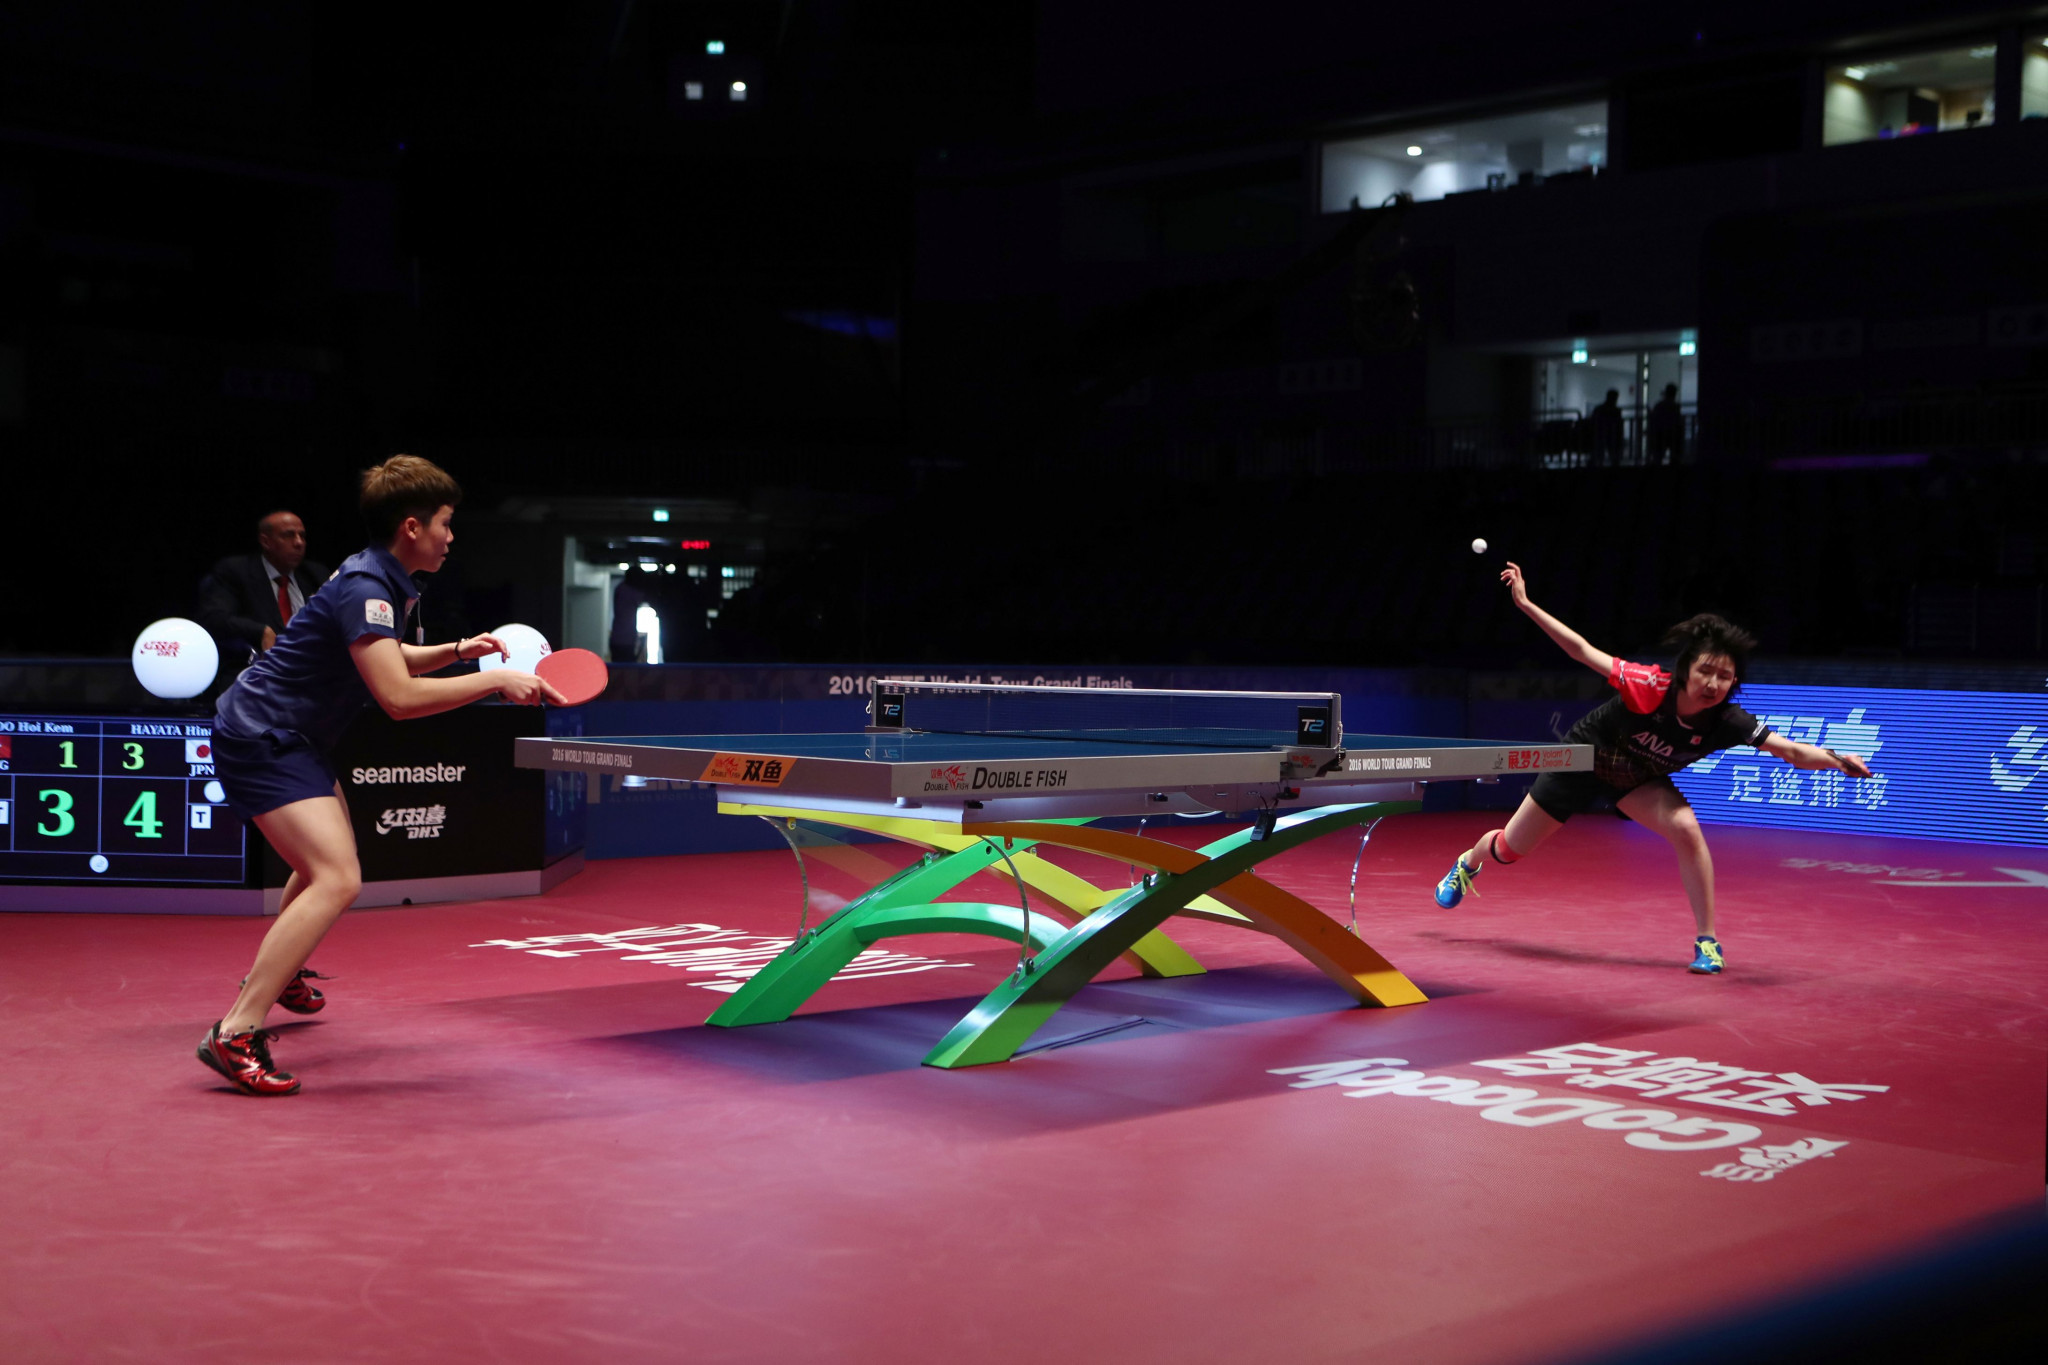 Hong Kong's table tennis team have pulled out of two WTT events over player safety concerns ©Getty Images